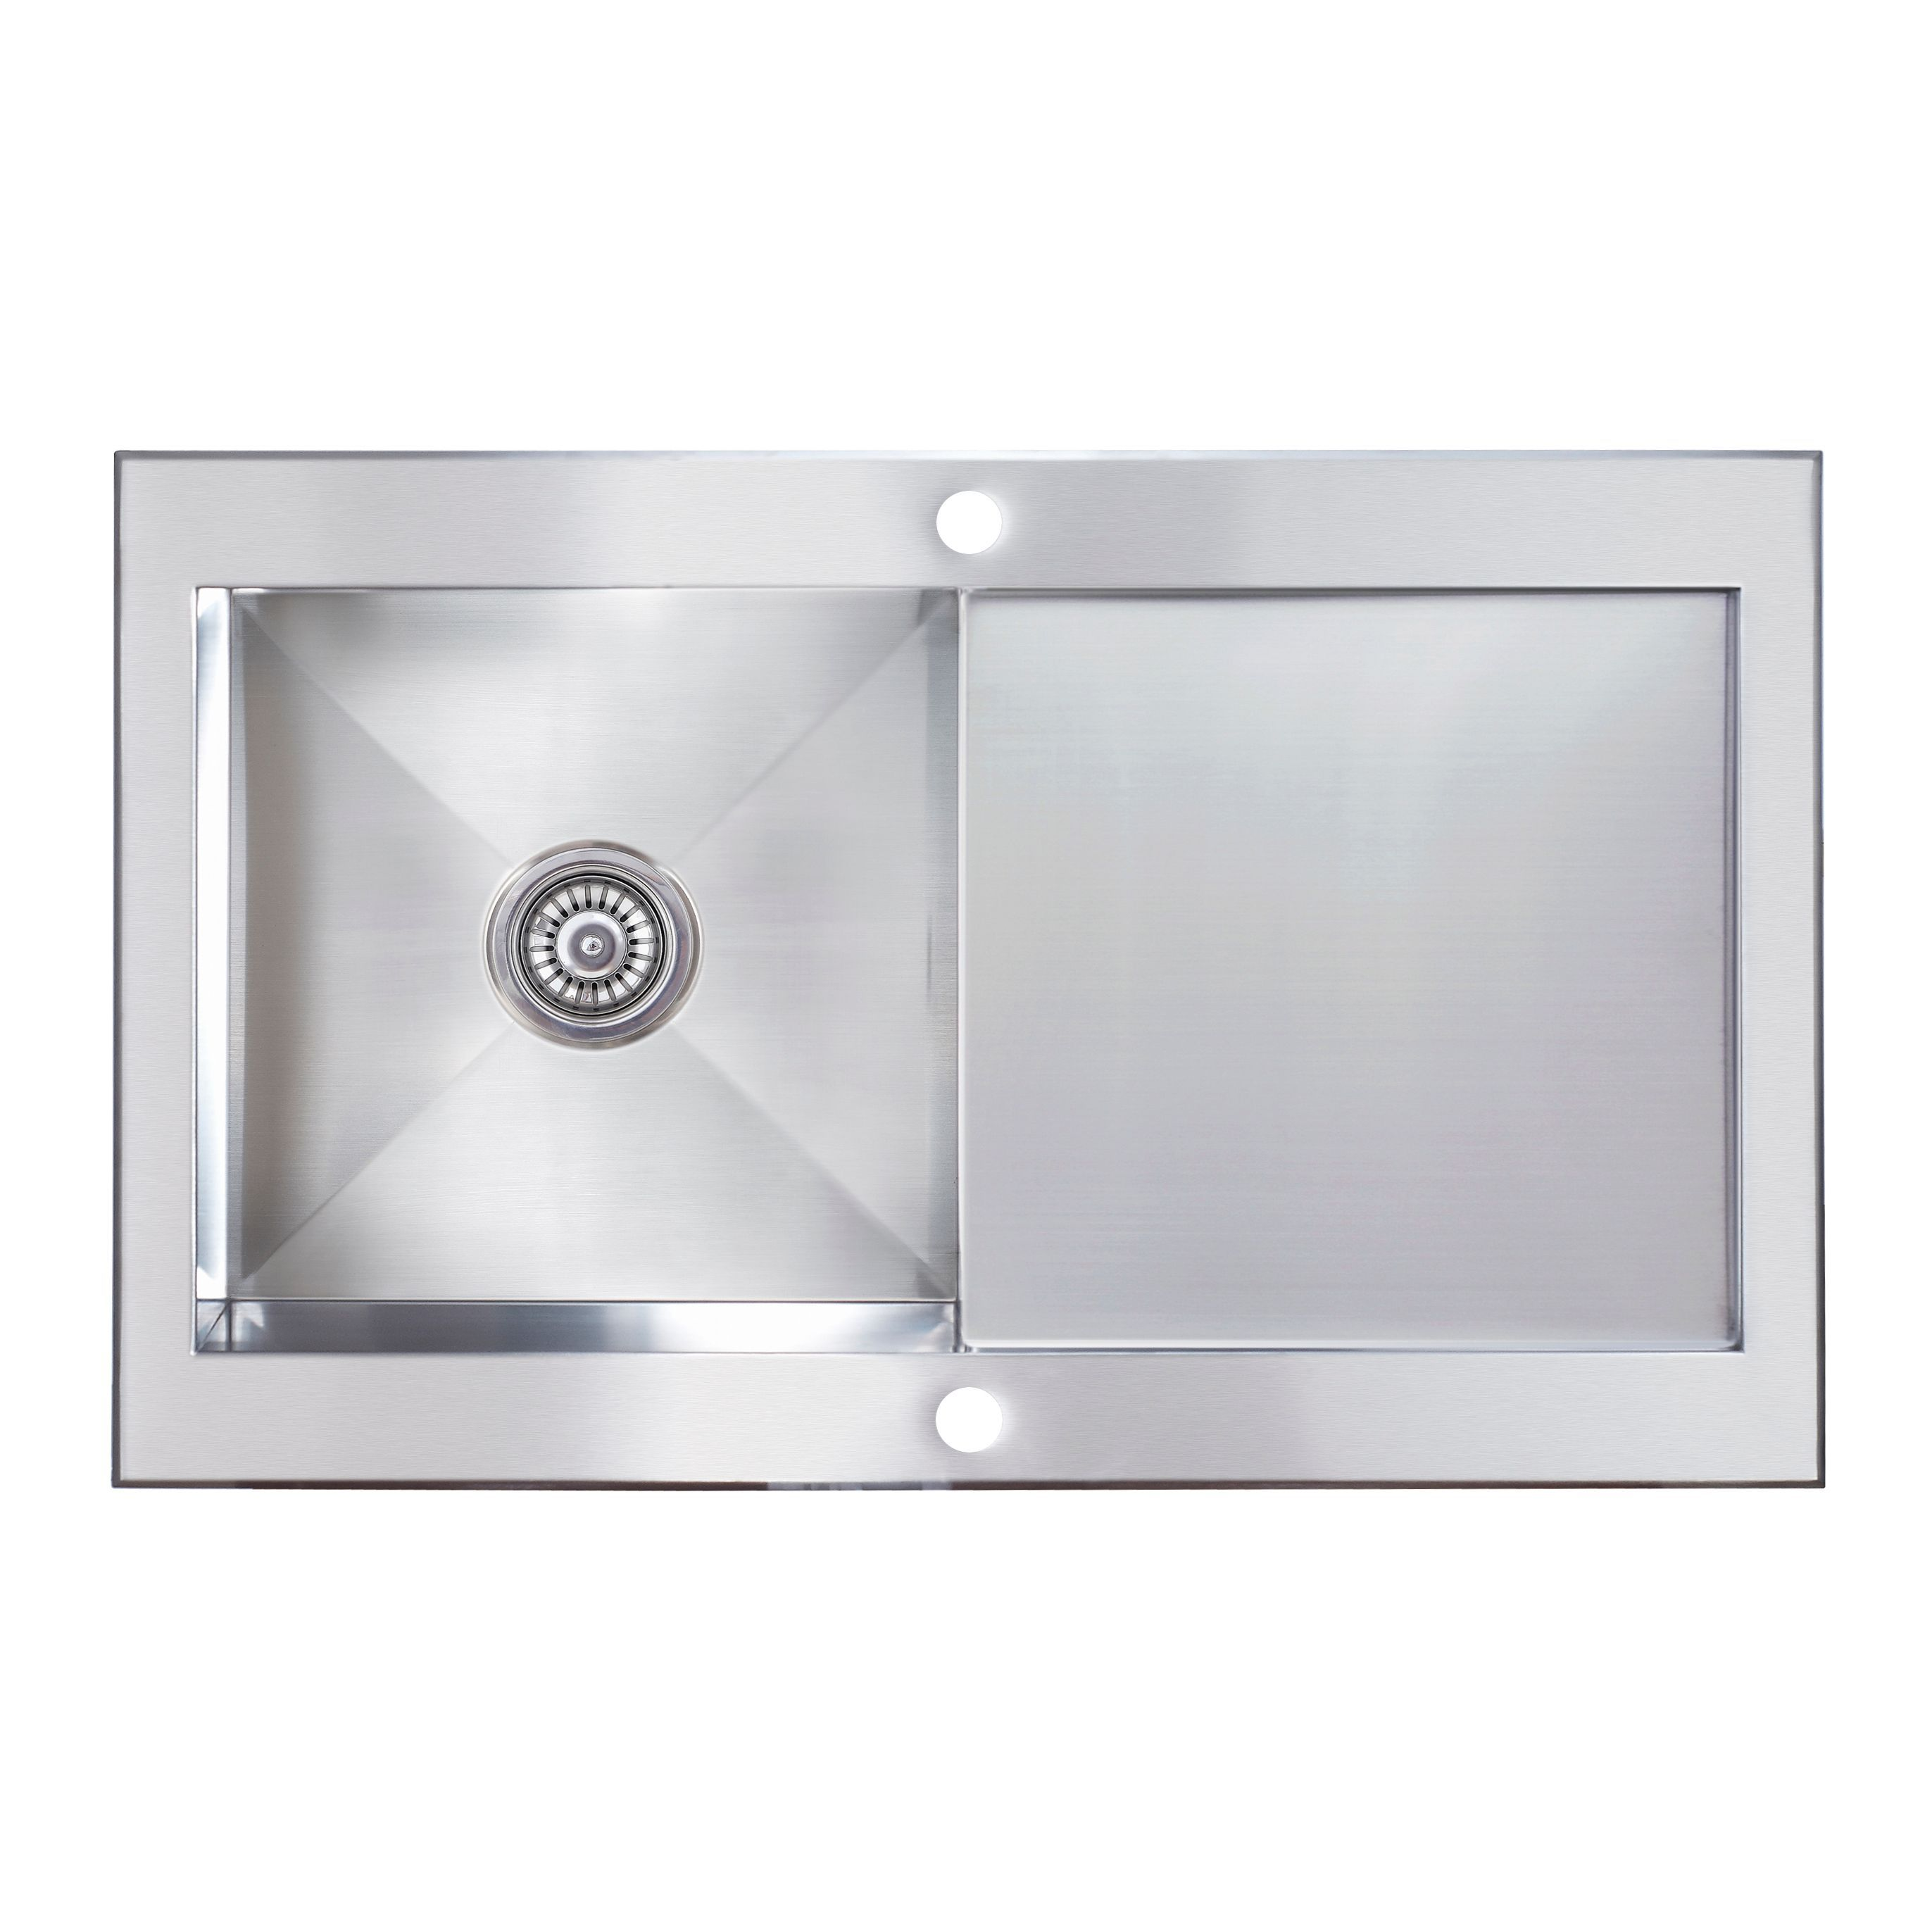 Cooke lewis steel sink diy - Bq kitchen sinks ...